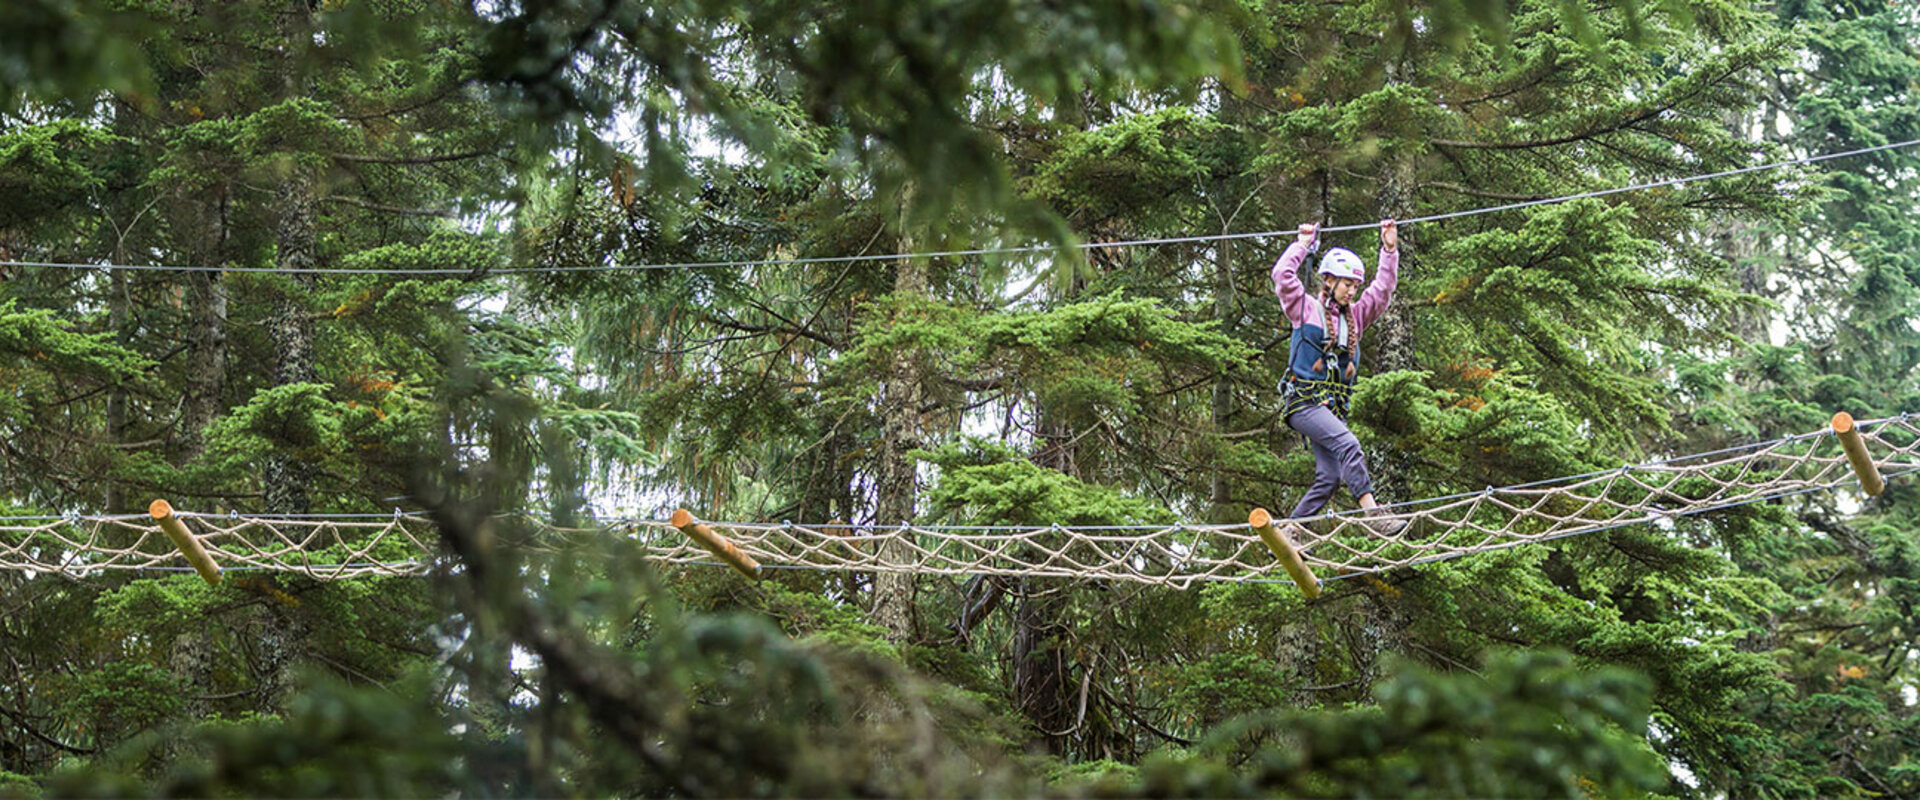 Discover Grouse Mountain from new height this summer with Mountain Ropes Adventure